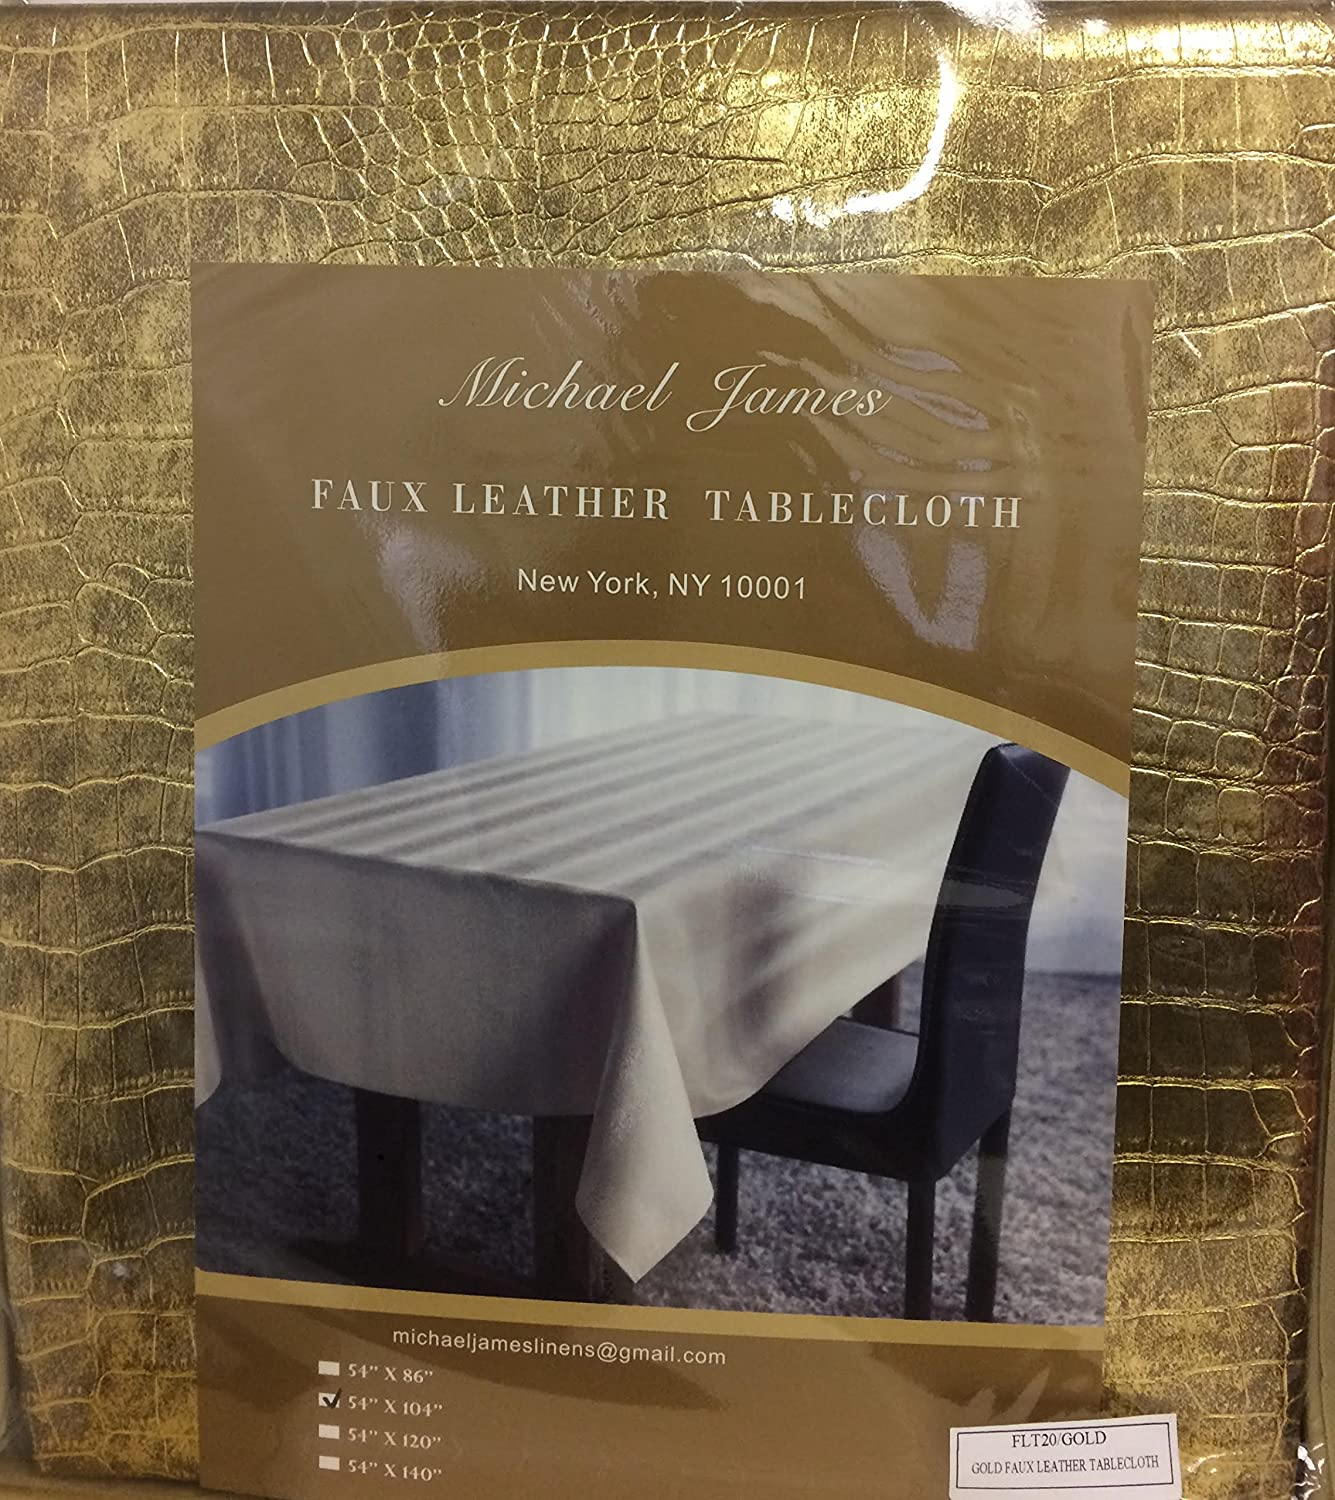 amazon com alligator faux leather tablecloth in gold 54x86 kitchen